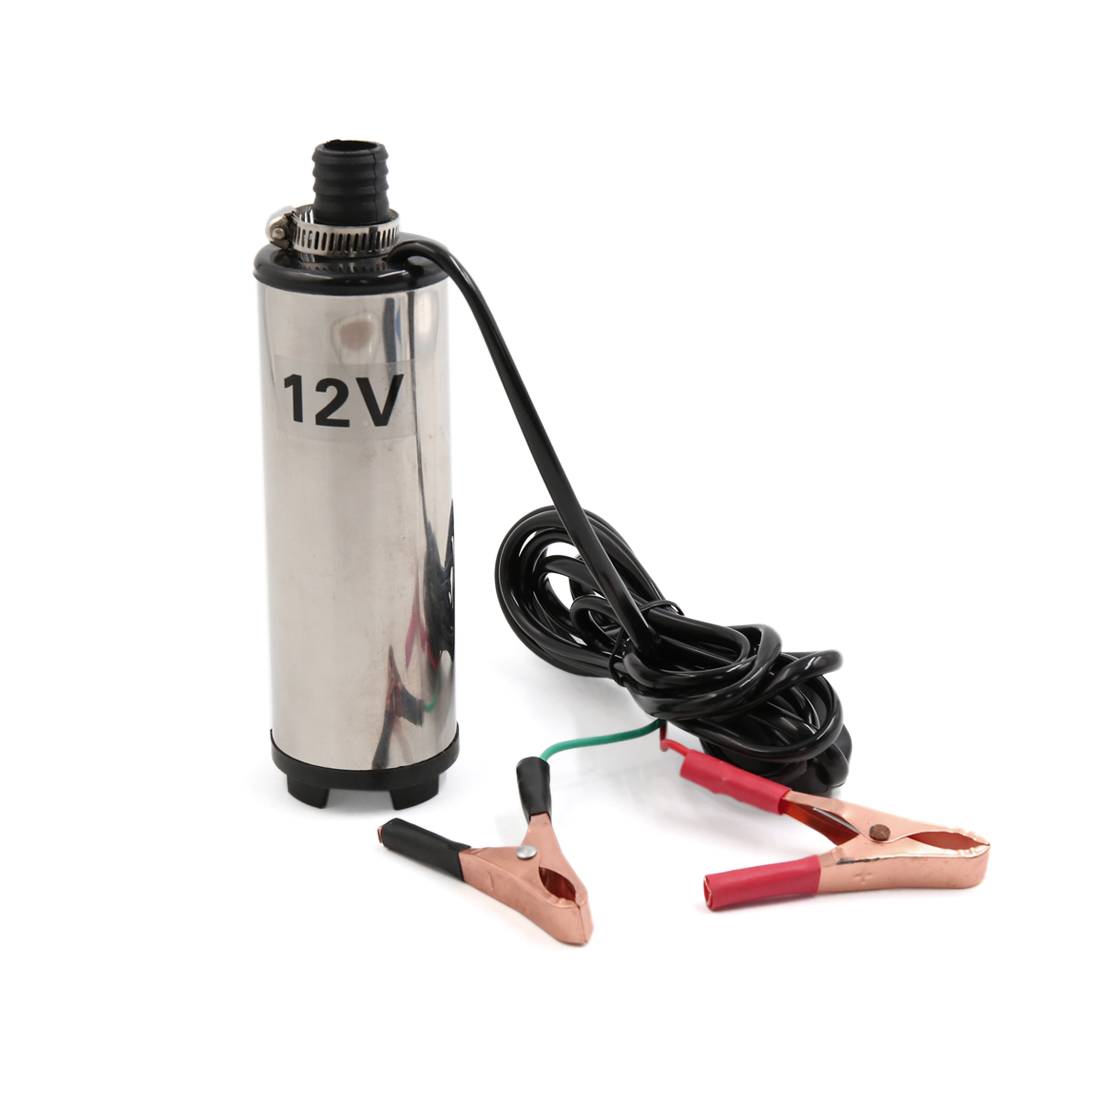 DC 12V Stainless Steel Submersible Fuel Water Liquid Oil Pump for Car Vehicle by Unique Bargains